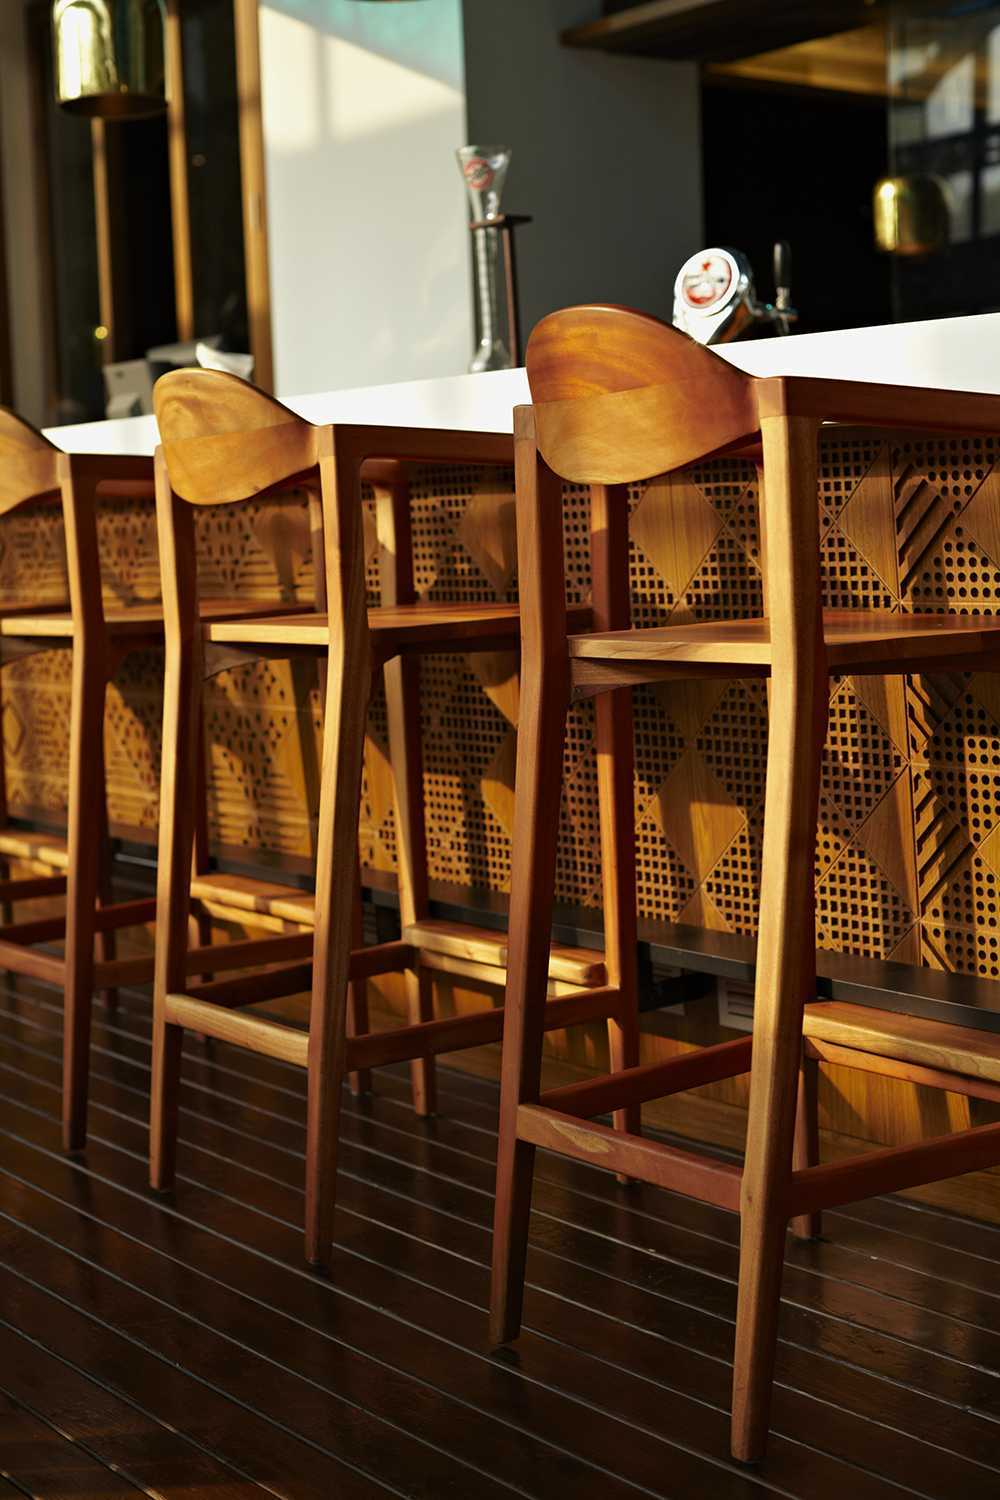 Alvin Tjitrowirjo, Alvint Studio Dapour & 100 Bar And Eatery Hotel Atlet Century Park Senayan Hotel Atlet Century Park Senayan Interior Detail Kontemporer <P>Bespoke Barstool Made Out Of Sold Mahogany Covers The Lasercut Patterned Barfront&nbsp;</p> 15606